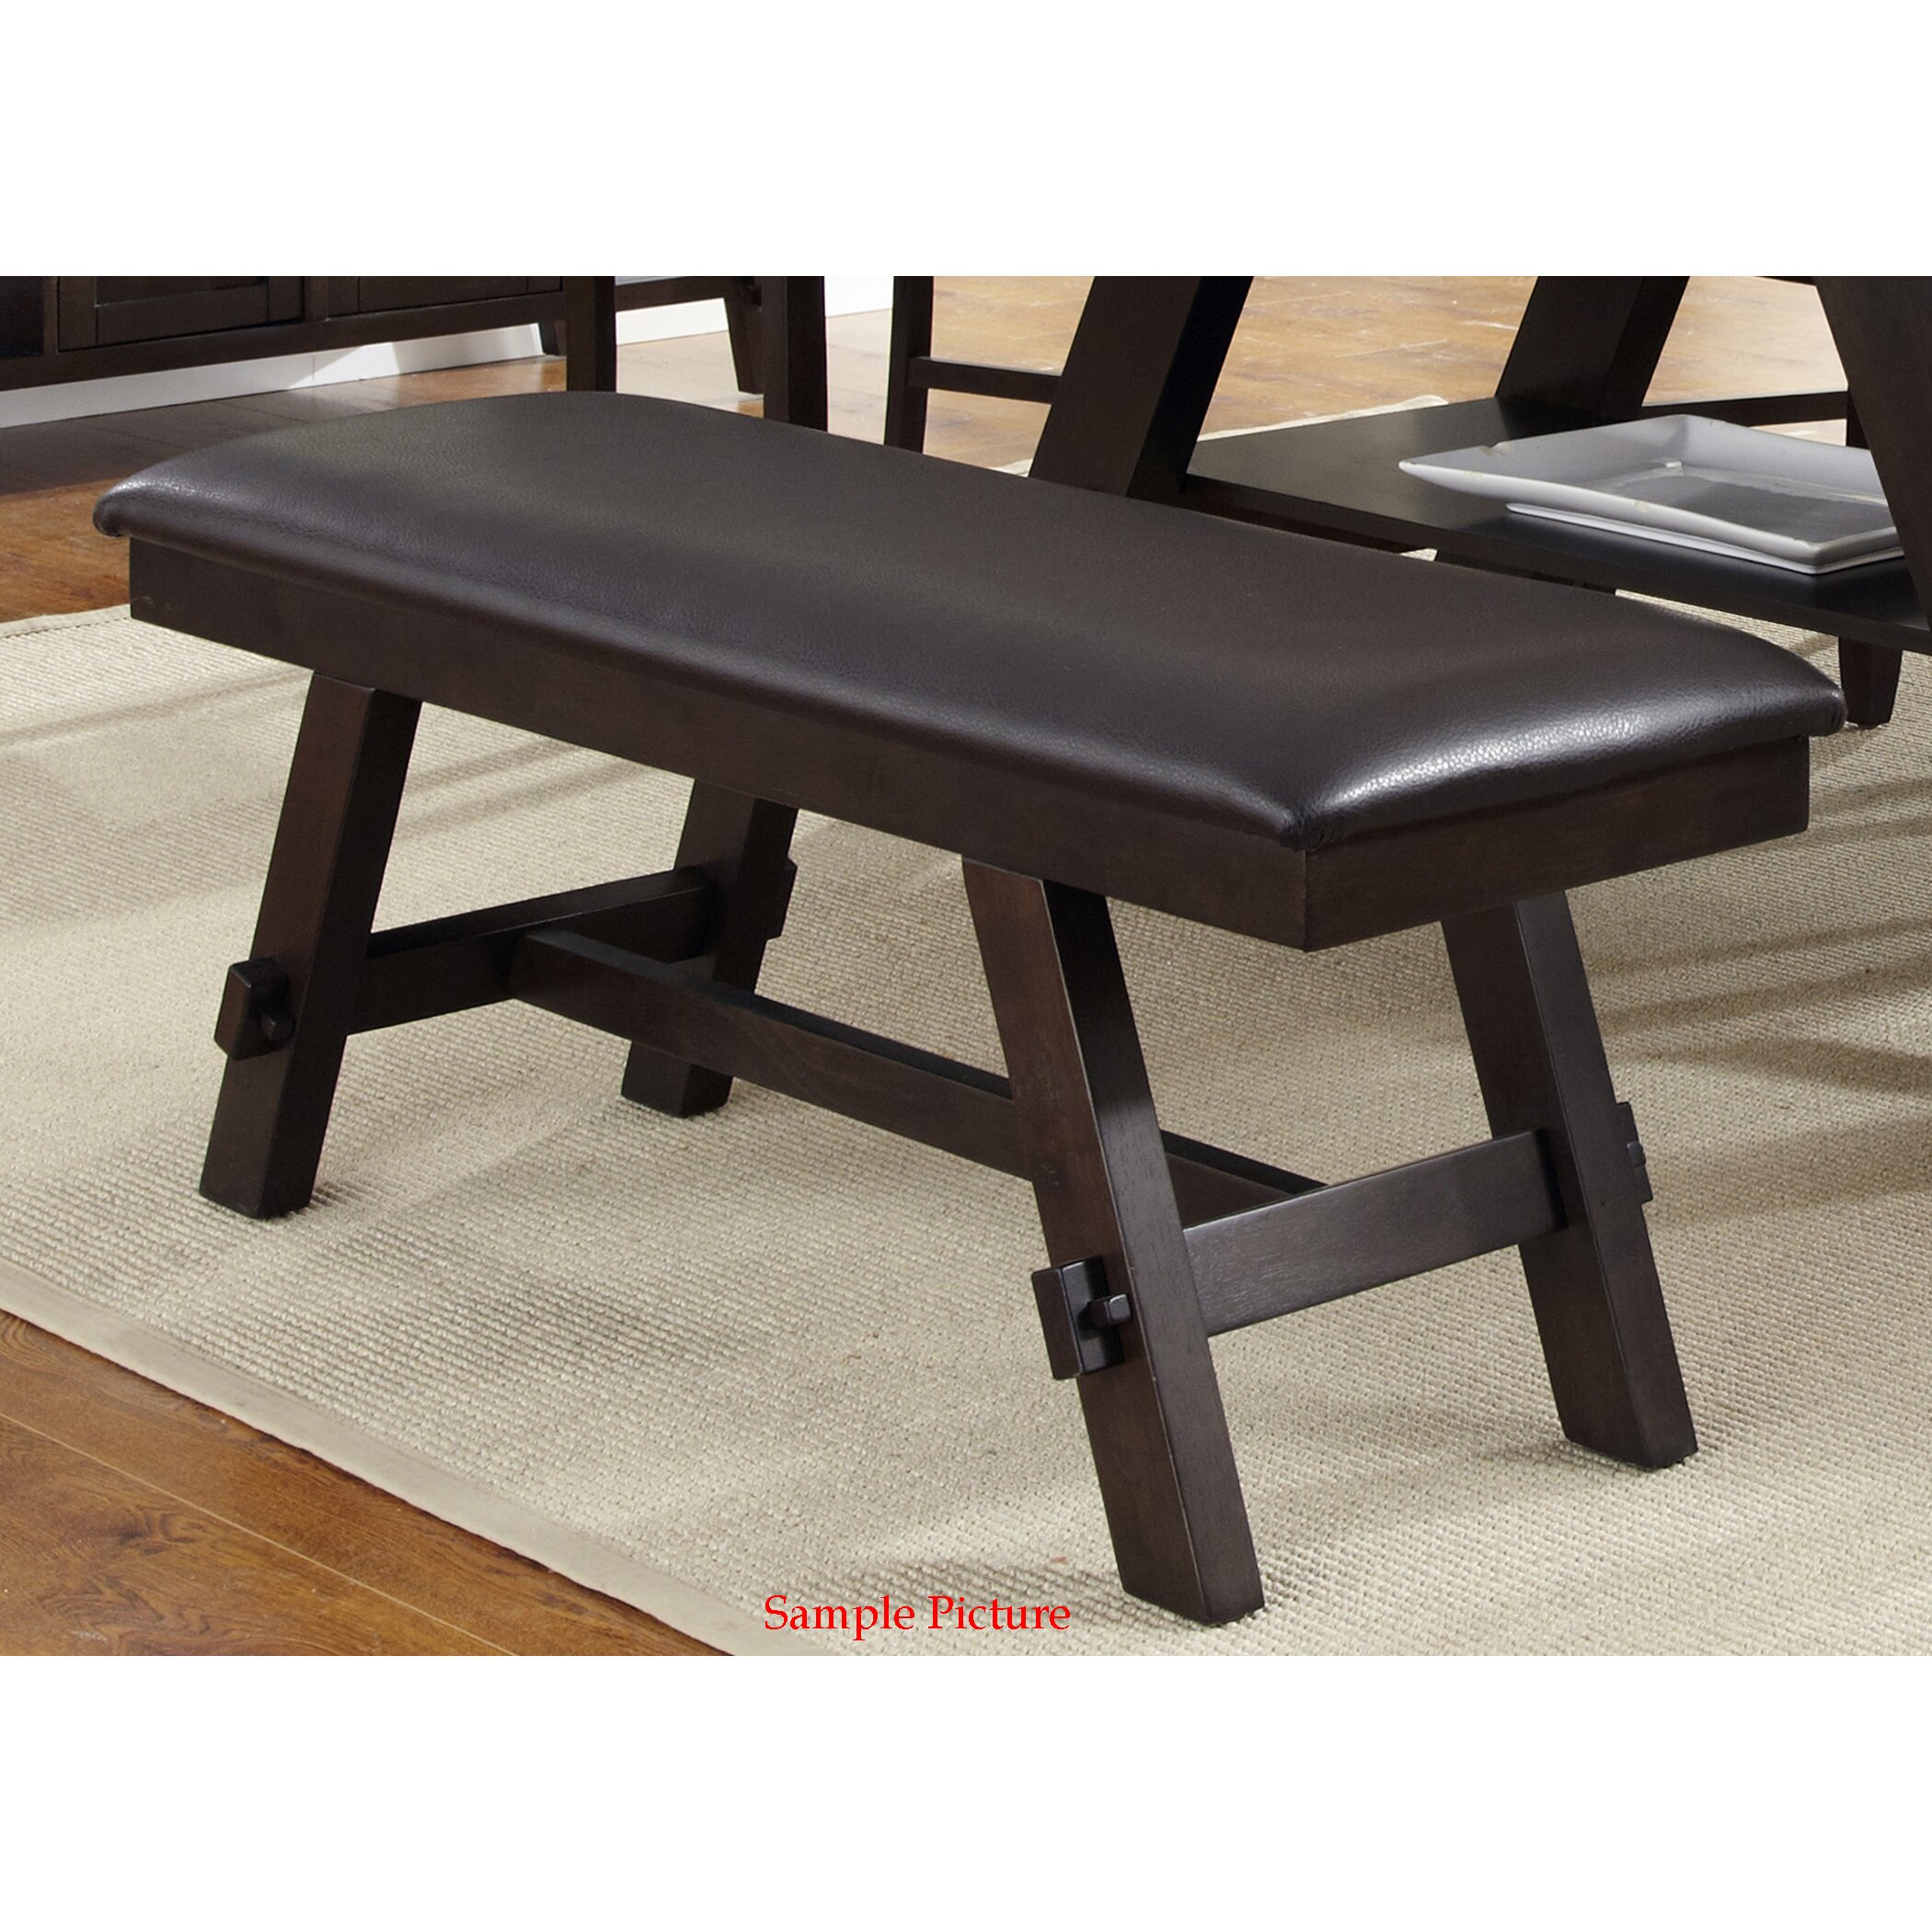 Upholstered Kitchen Benches 28 Images Modus Yosemite Upholstered Kitchen Bench Reviews